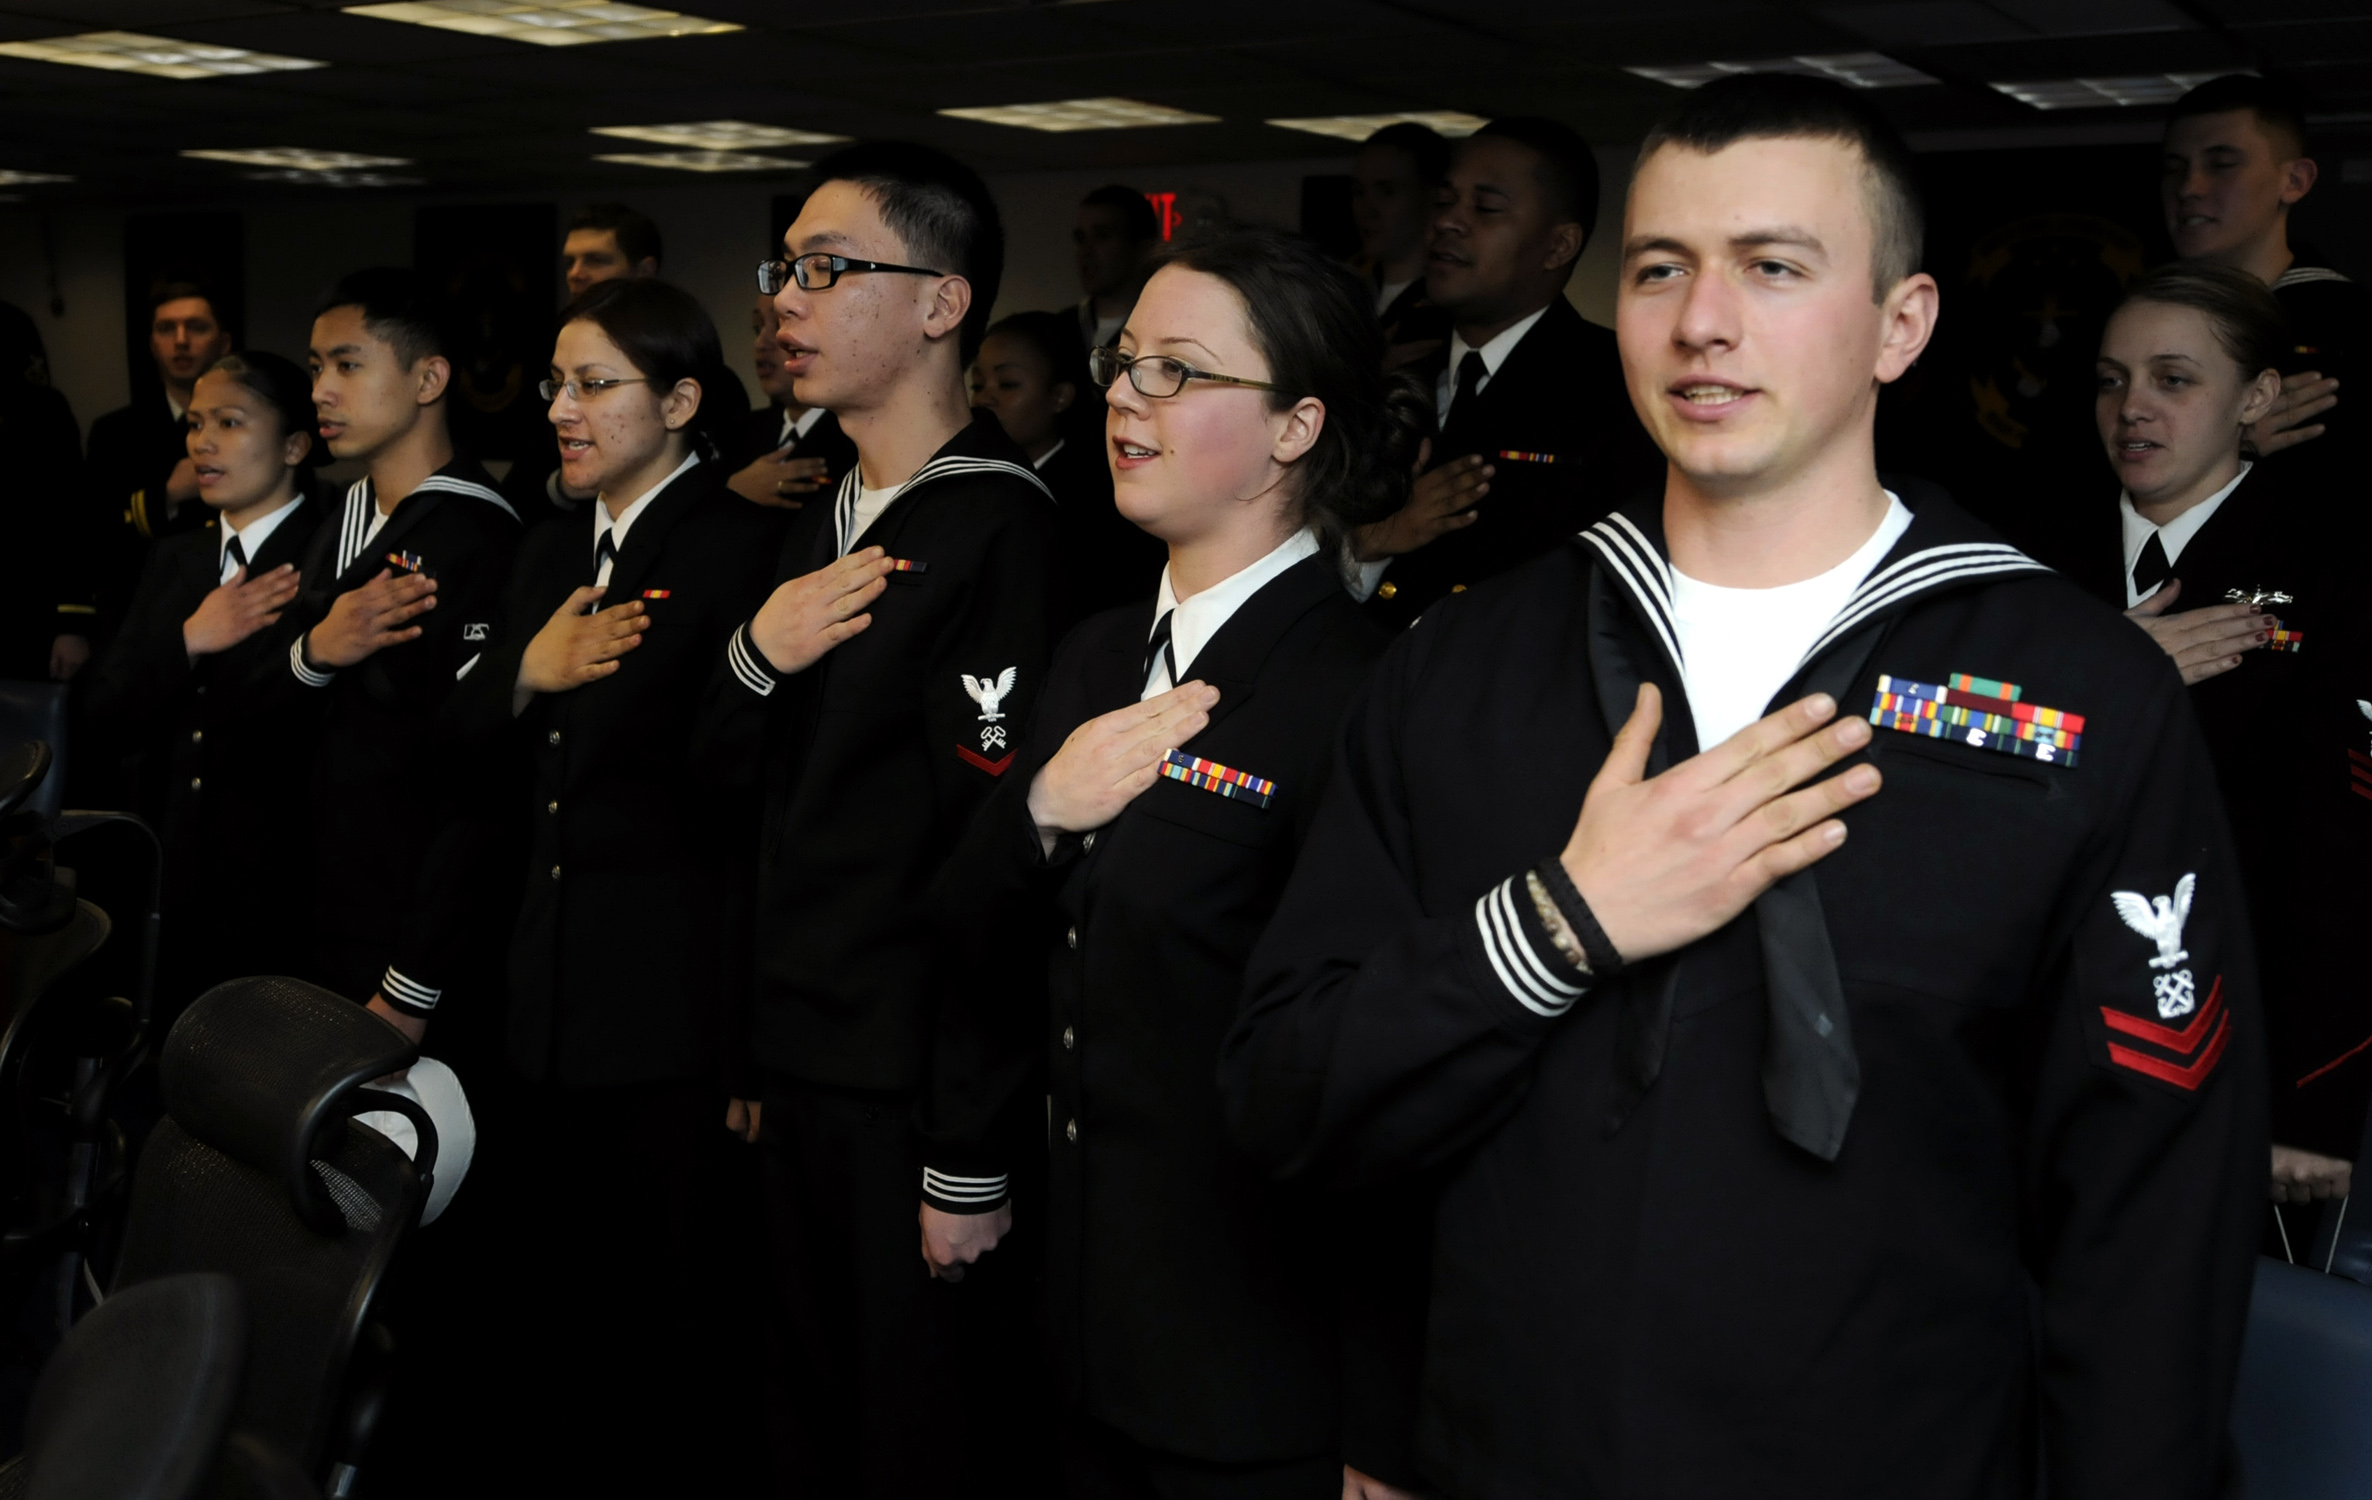 Sailors recite the pledge of allegiance as they become U.S. citizens during a naturalization ceremony aboard the U.S. 7th Fleet command ship USS Blue Ridge (LCC 19) at Busan, South Korea. U.S. Navy photo by Mass Communication Specialist 3rd Class Daniel Viramontes taken on March 8, 2010.